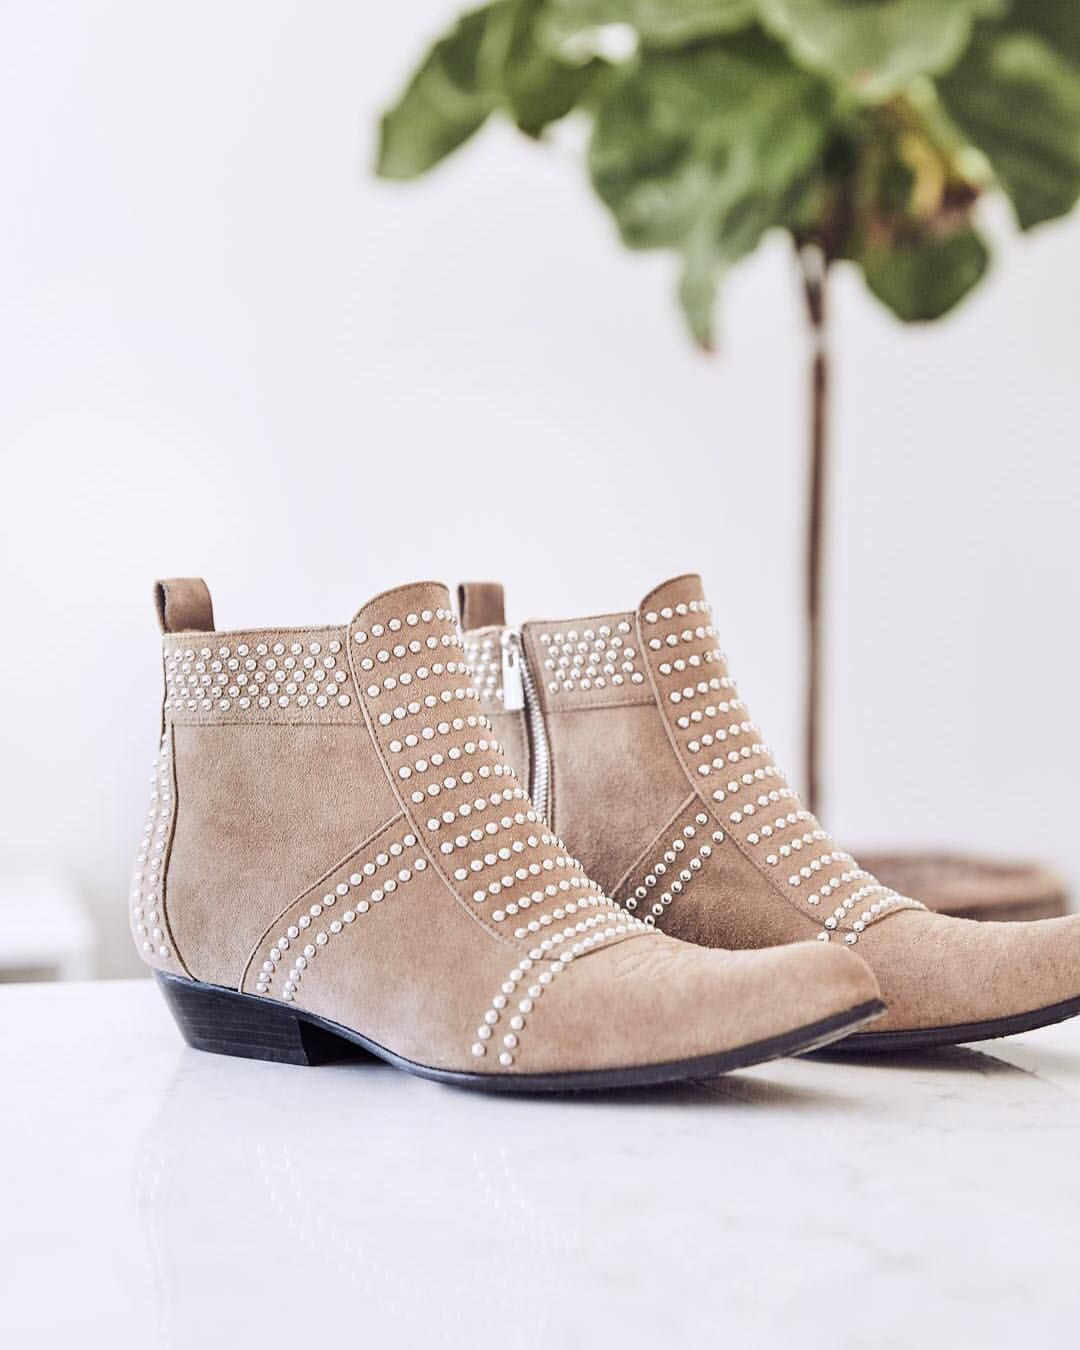 a0d3461b423 Pin by LJB Me . on Clothe Me: Fashion   Boots, Anine bing, Shoes